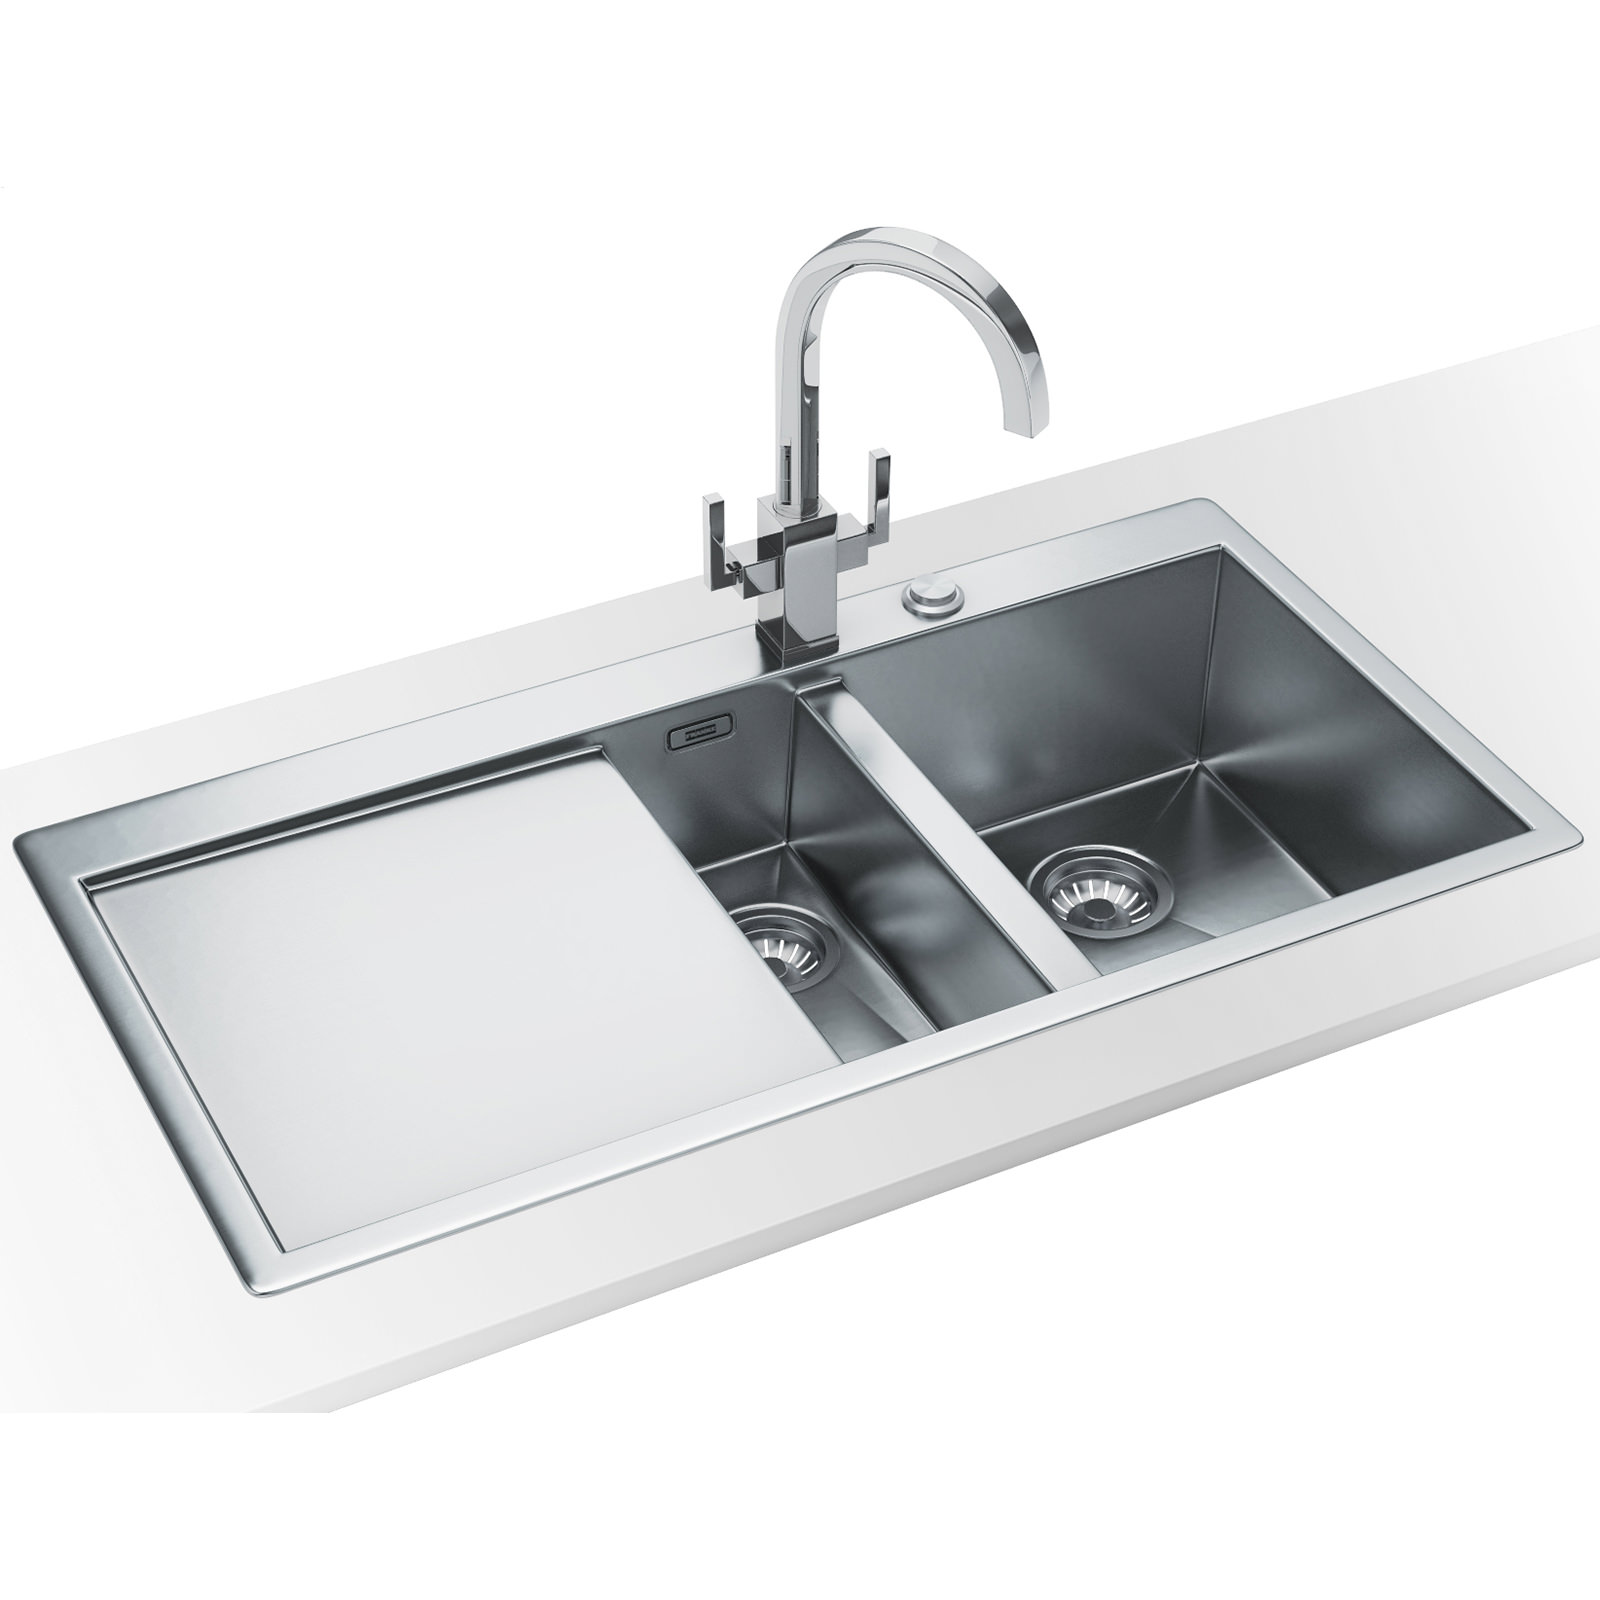 Franke Stainless Steel Kitchen Sinks Uk | Besto Blog